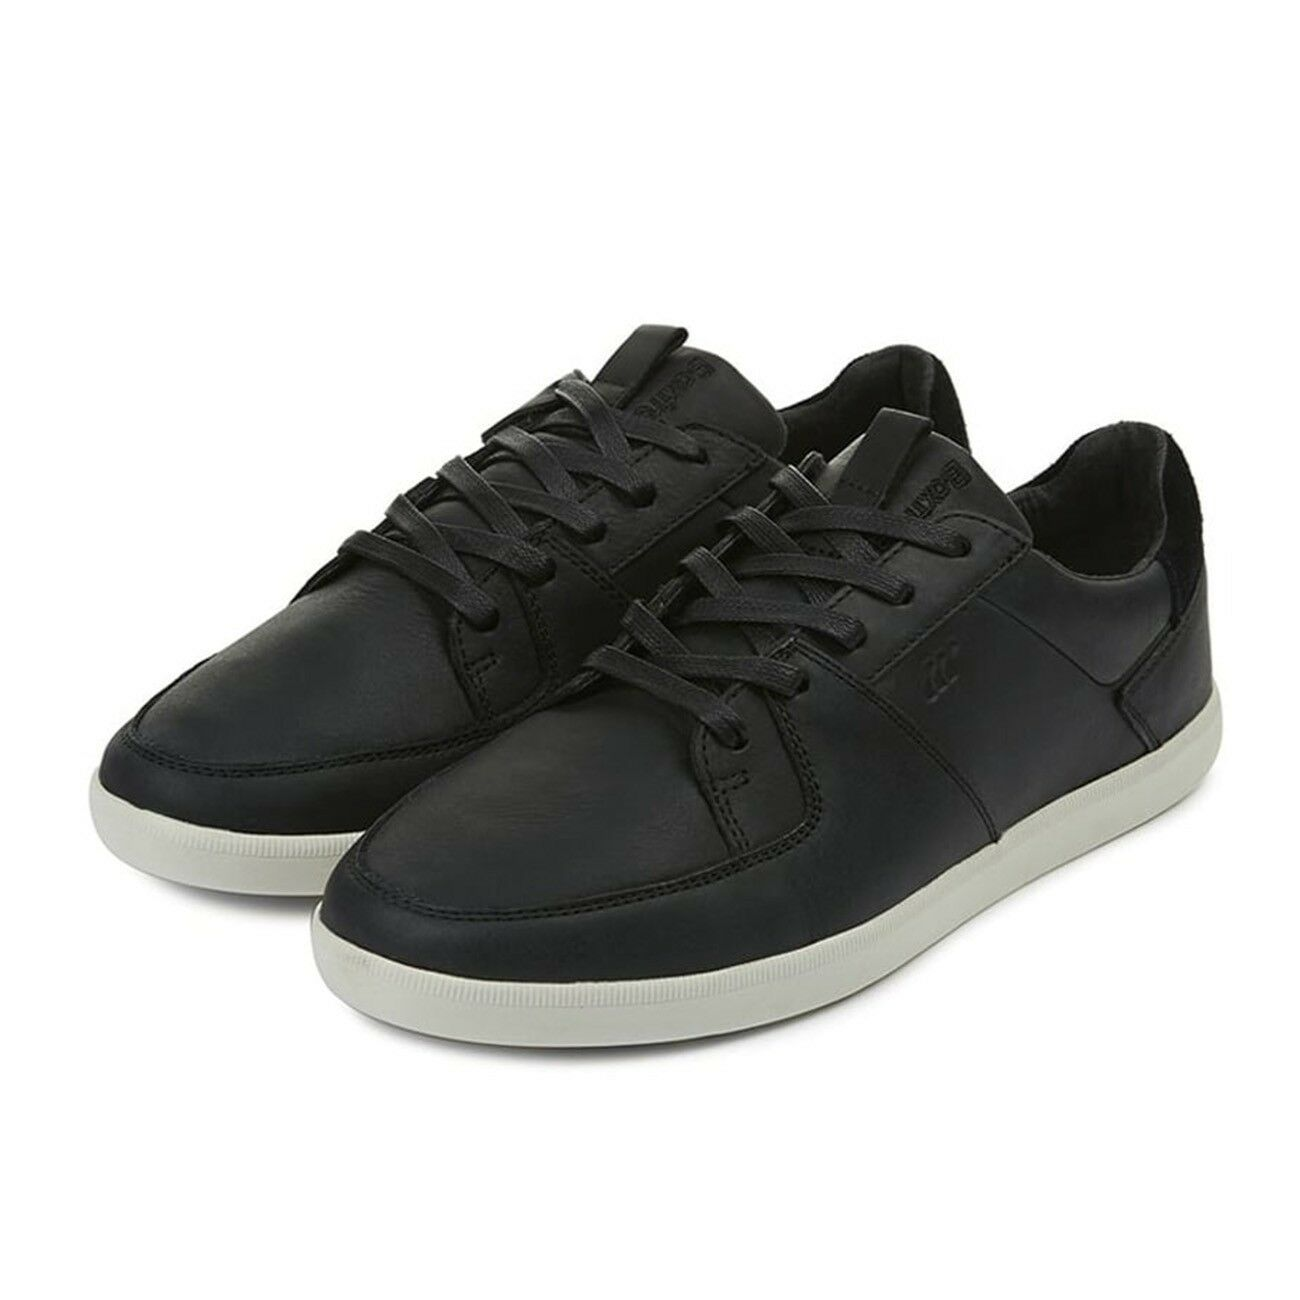 Boxfresh Herren Sneaker CLADD ICN - Leather Black